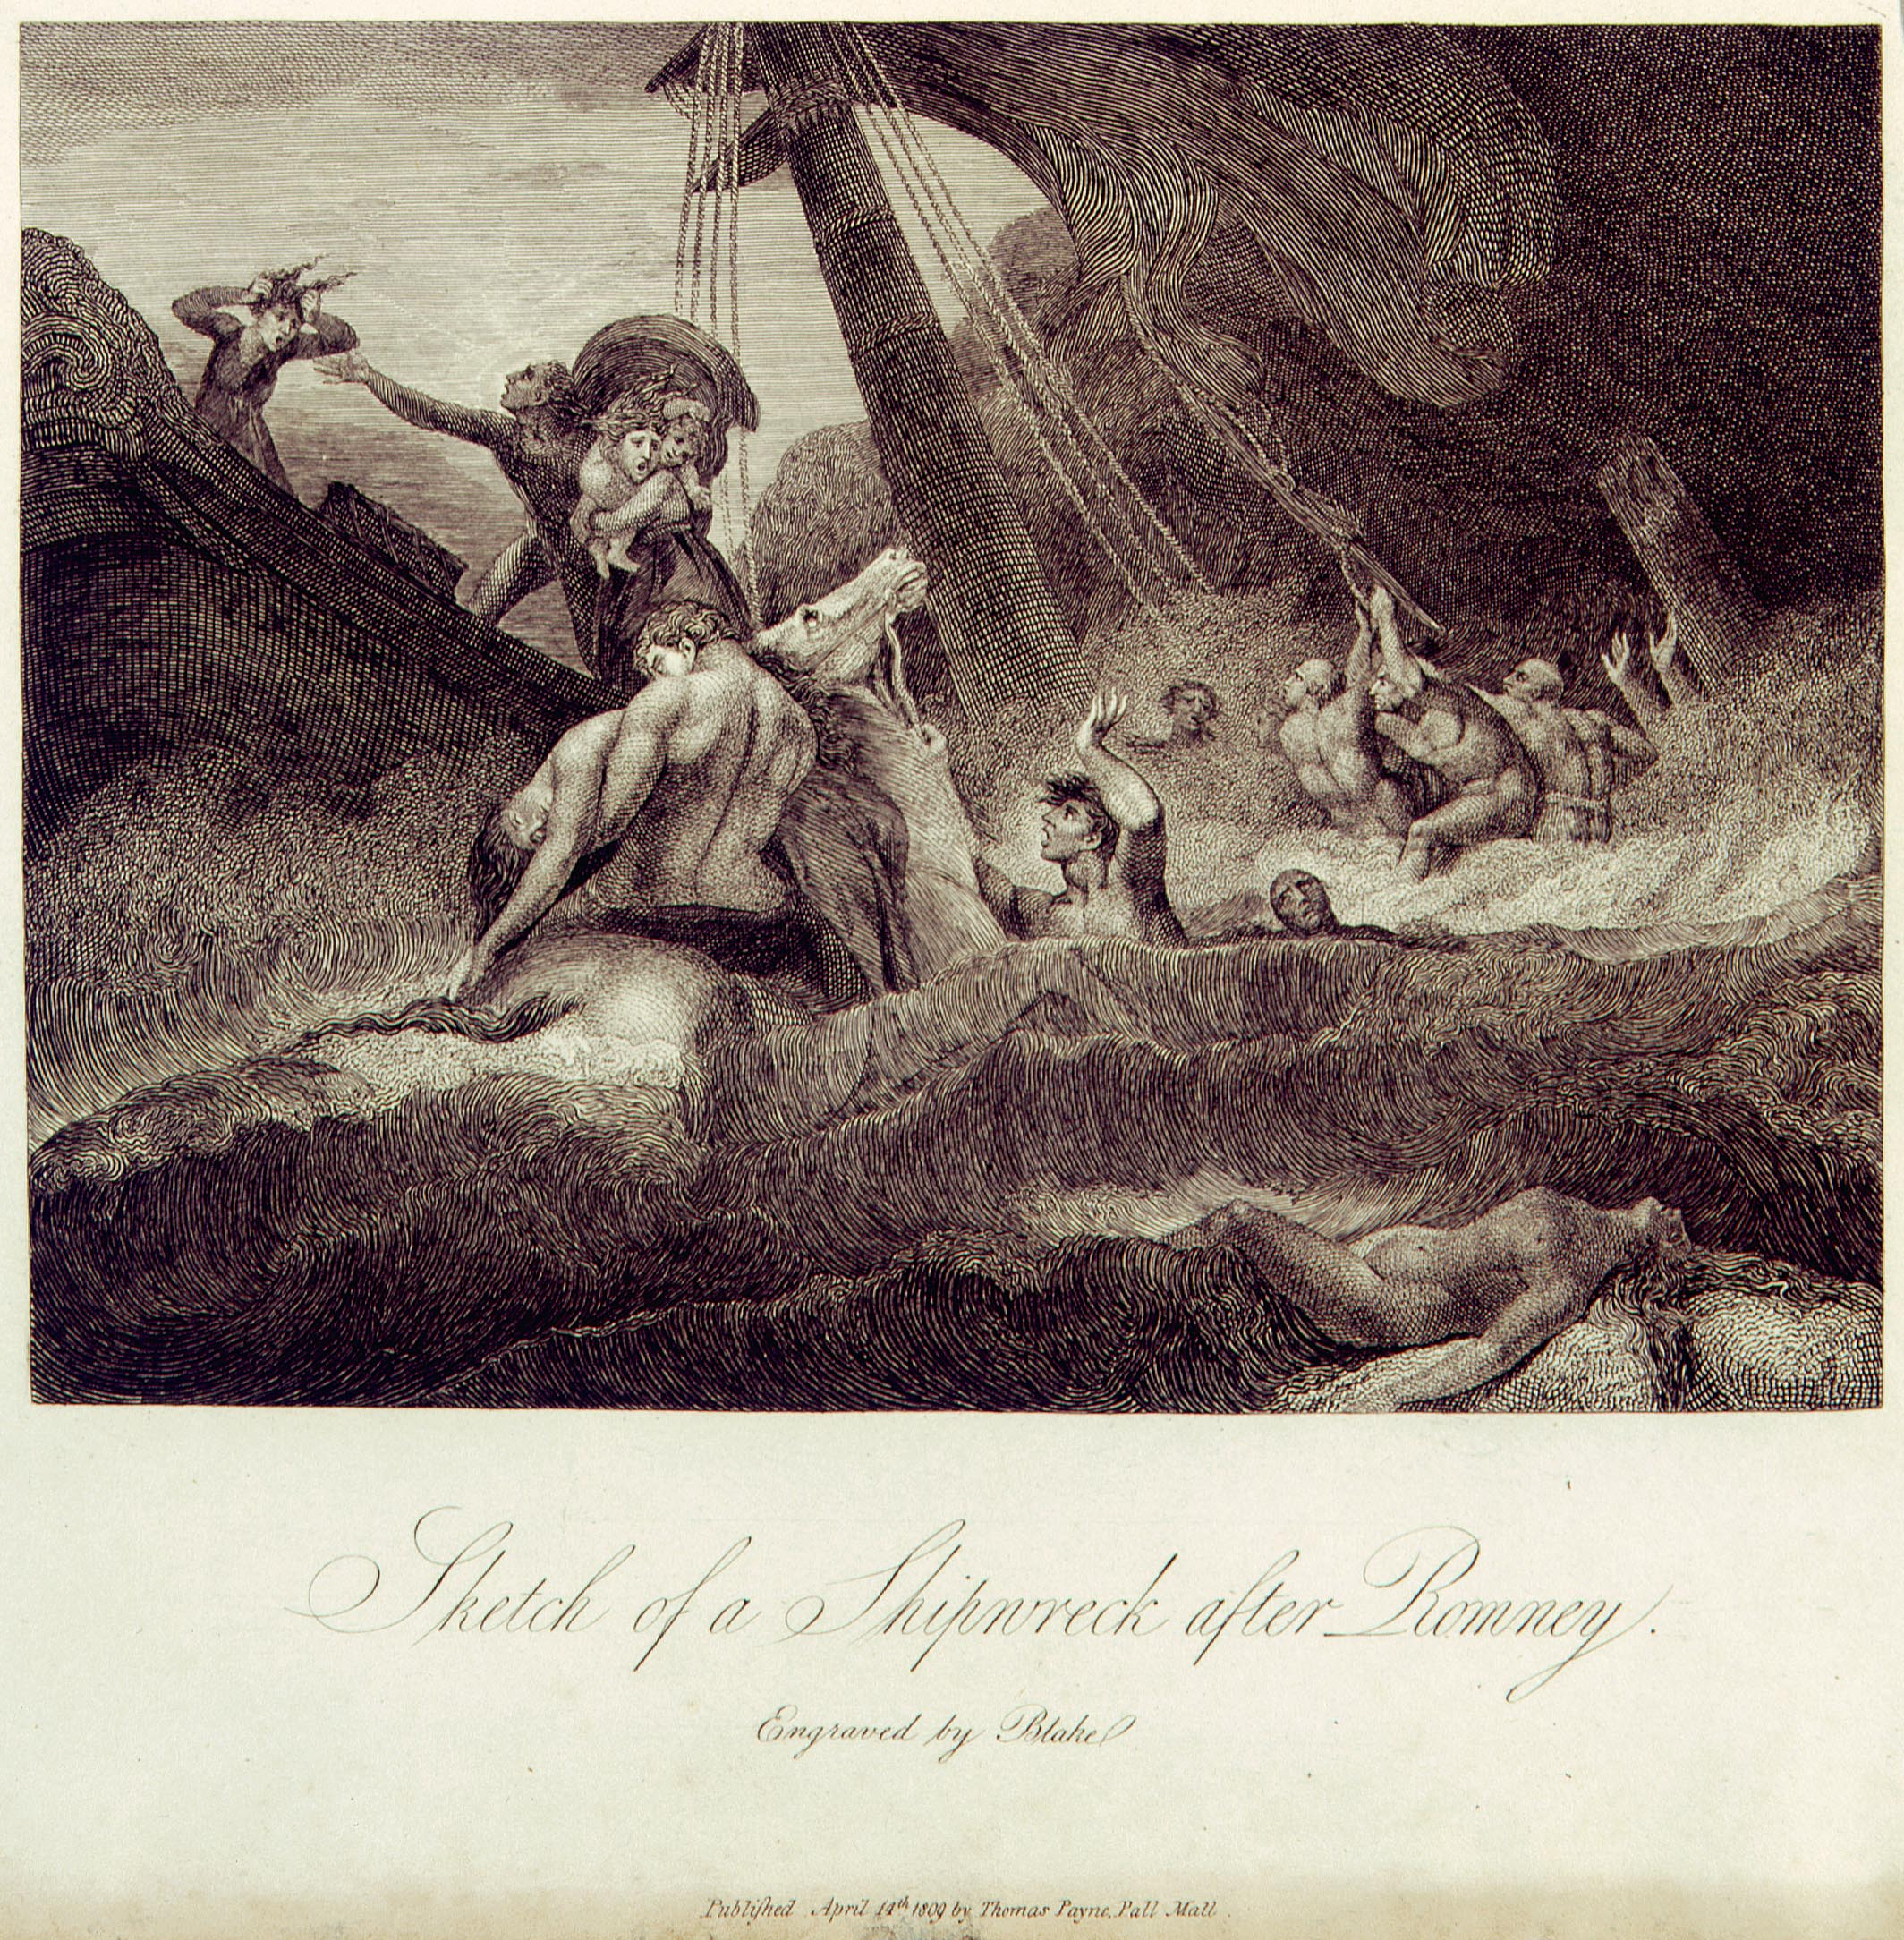 Sketch of a Shipwreck after Romney.           	Engraved by Blake           	           	Published April 14th 1809 by Thomas Payne, Pall Mall.